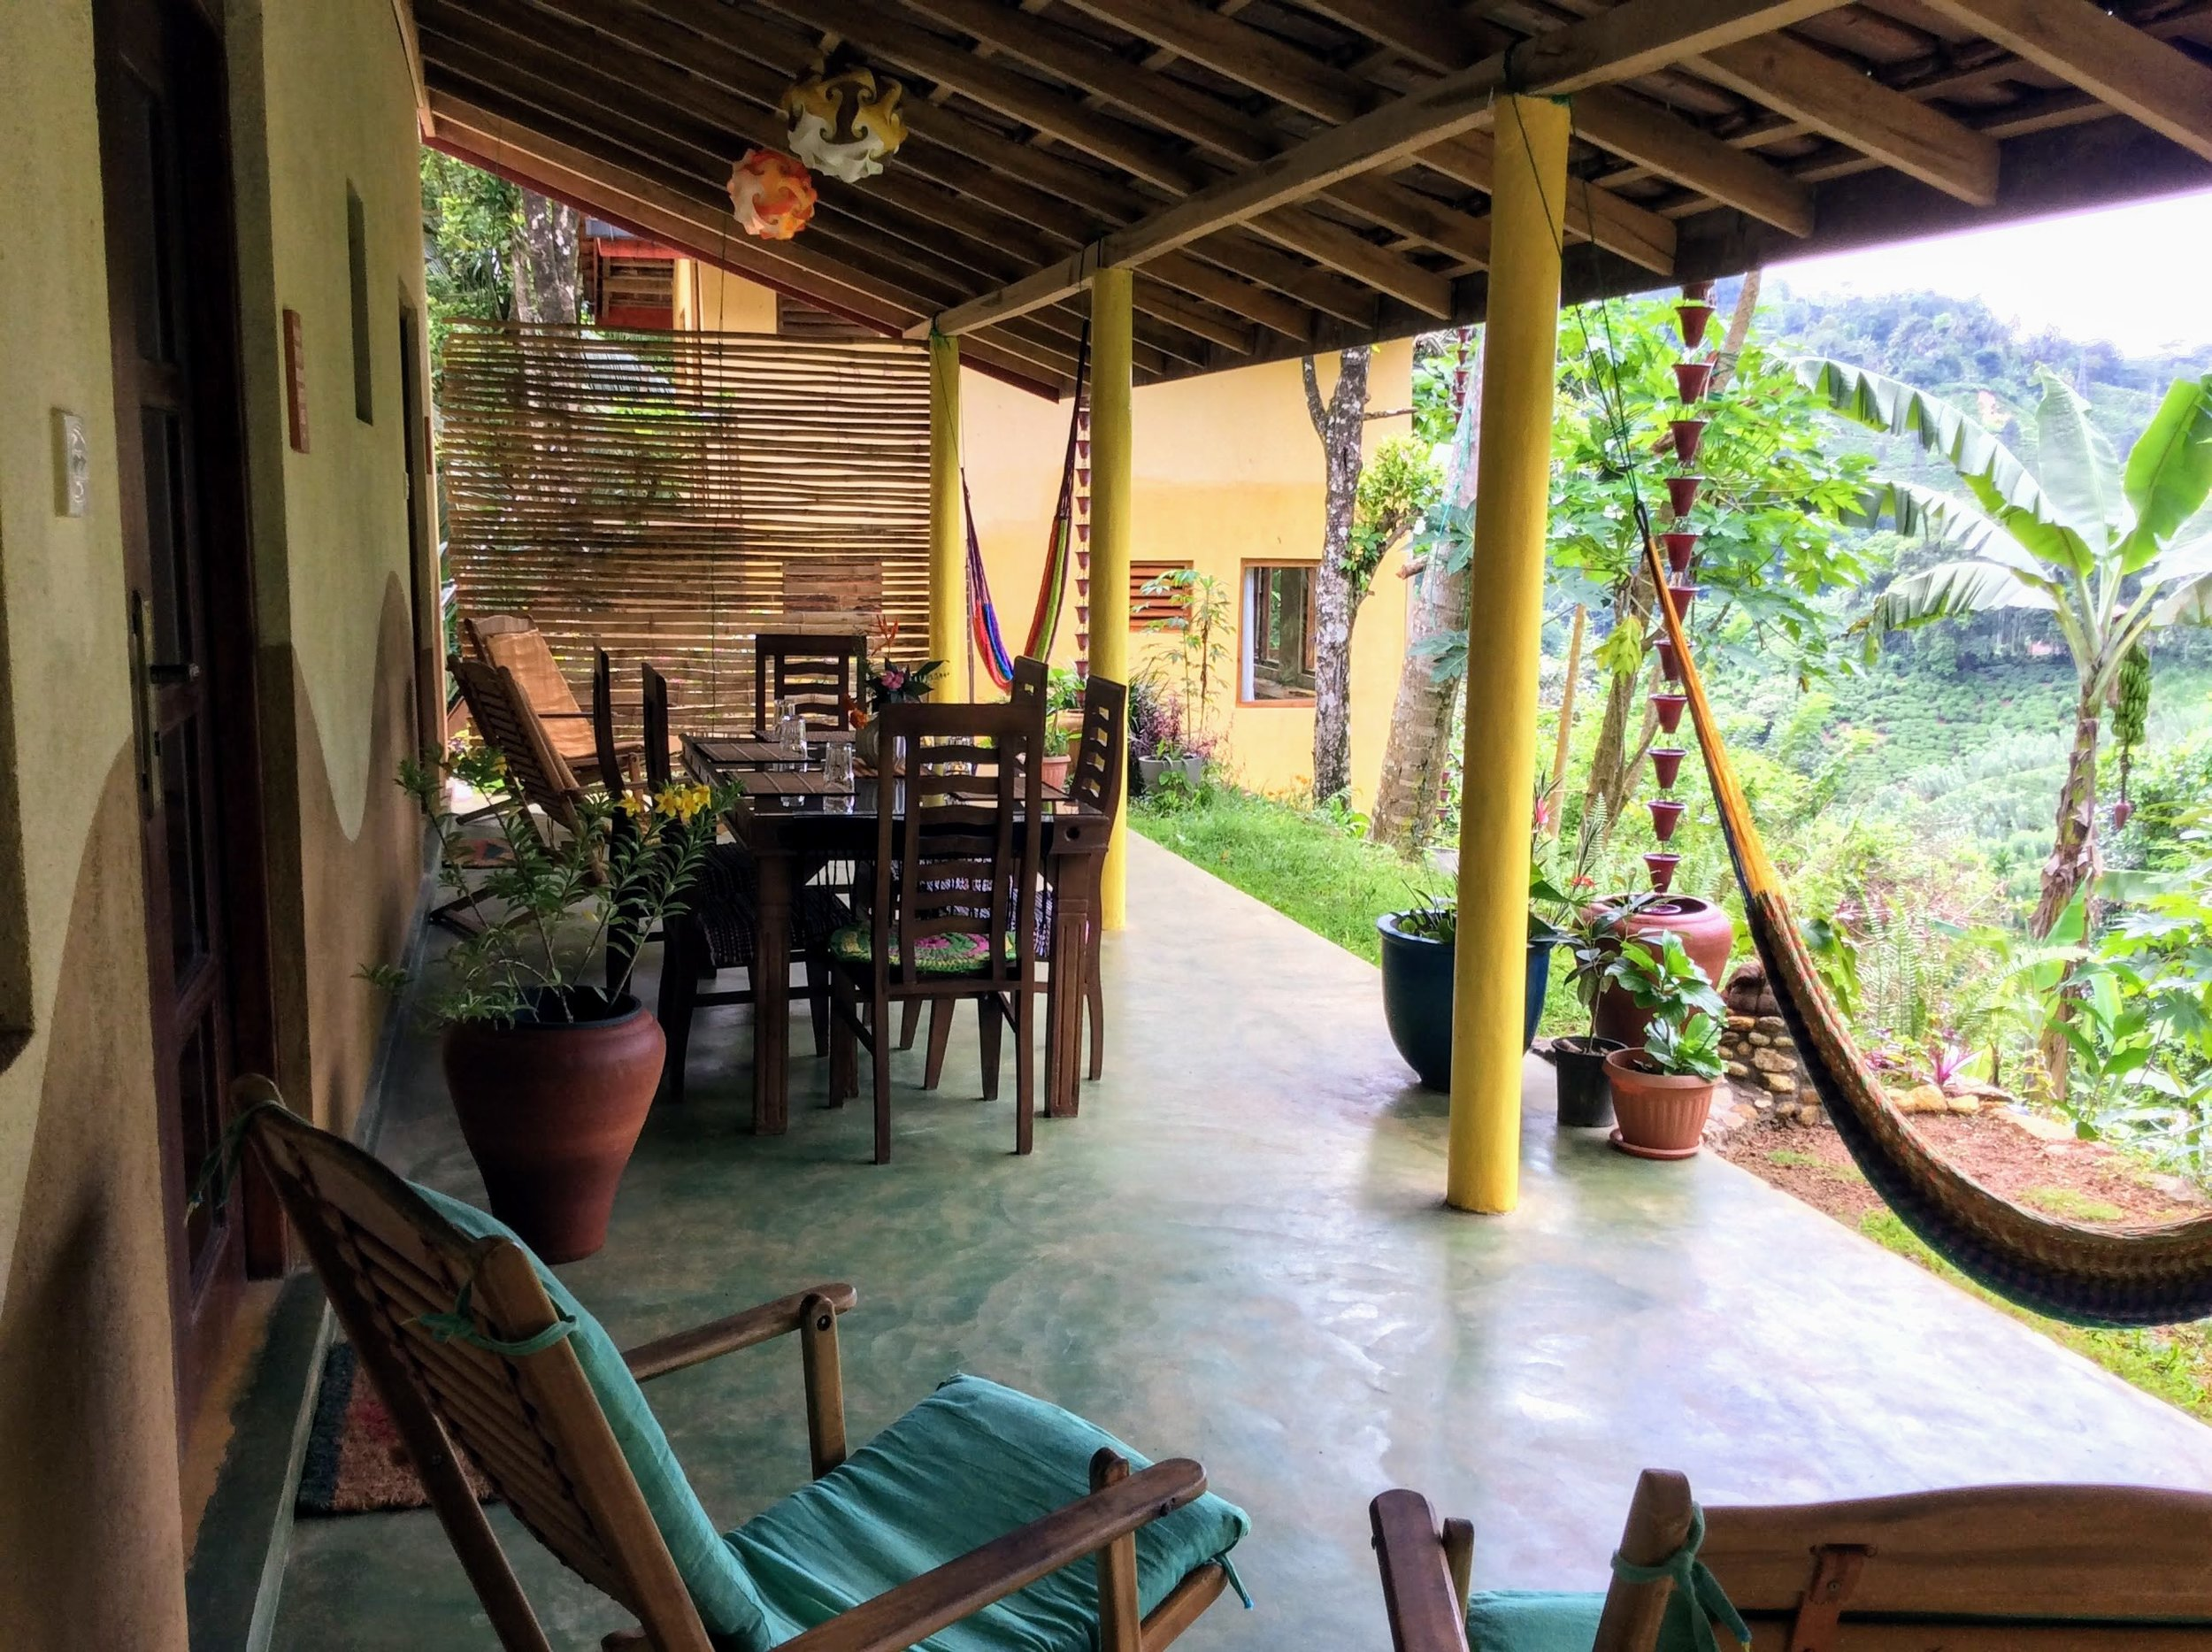 Valley View - Our two bedroom bungalow offers comfort and tranquility. Consisting of two bedrooms both with ensuite bathrooms and private entrances leading out on to a large veranda equipped with a dining table, hammocks and reclining chairs. Overlooking the tea plantations and ancient forests one can enjoy the views of the hills, birds and wildlife.